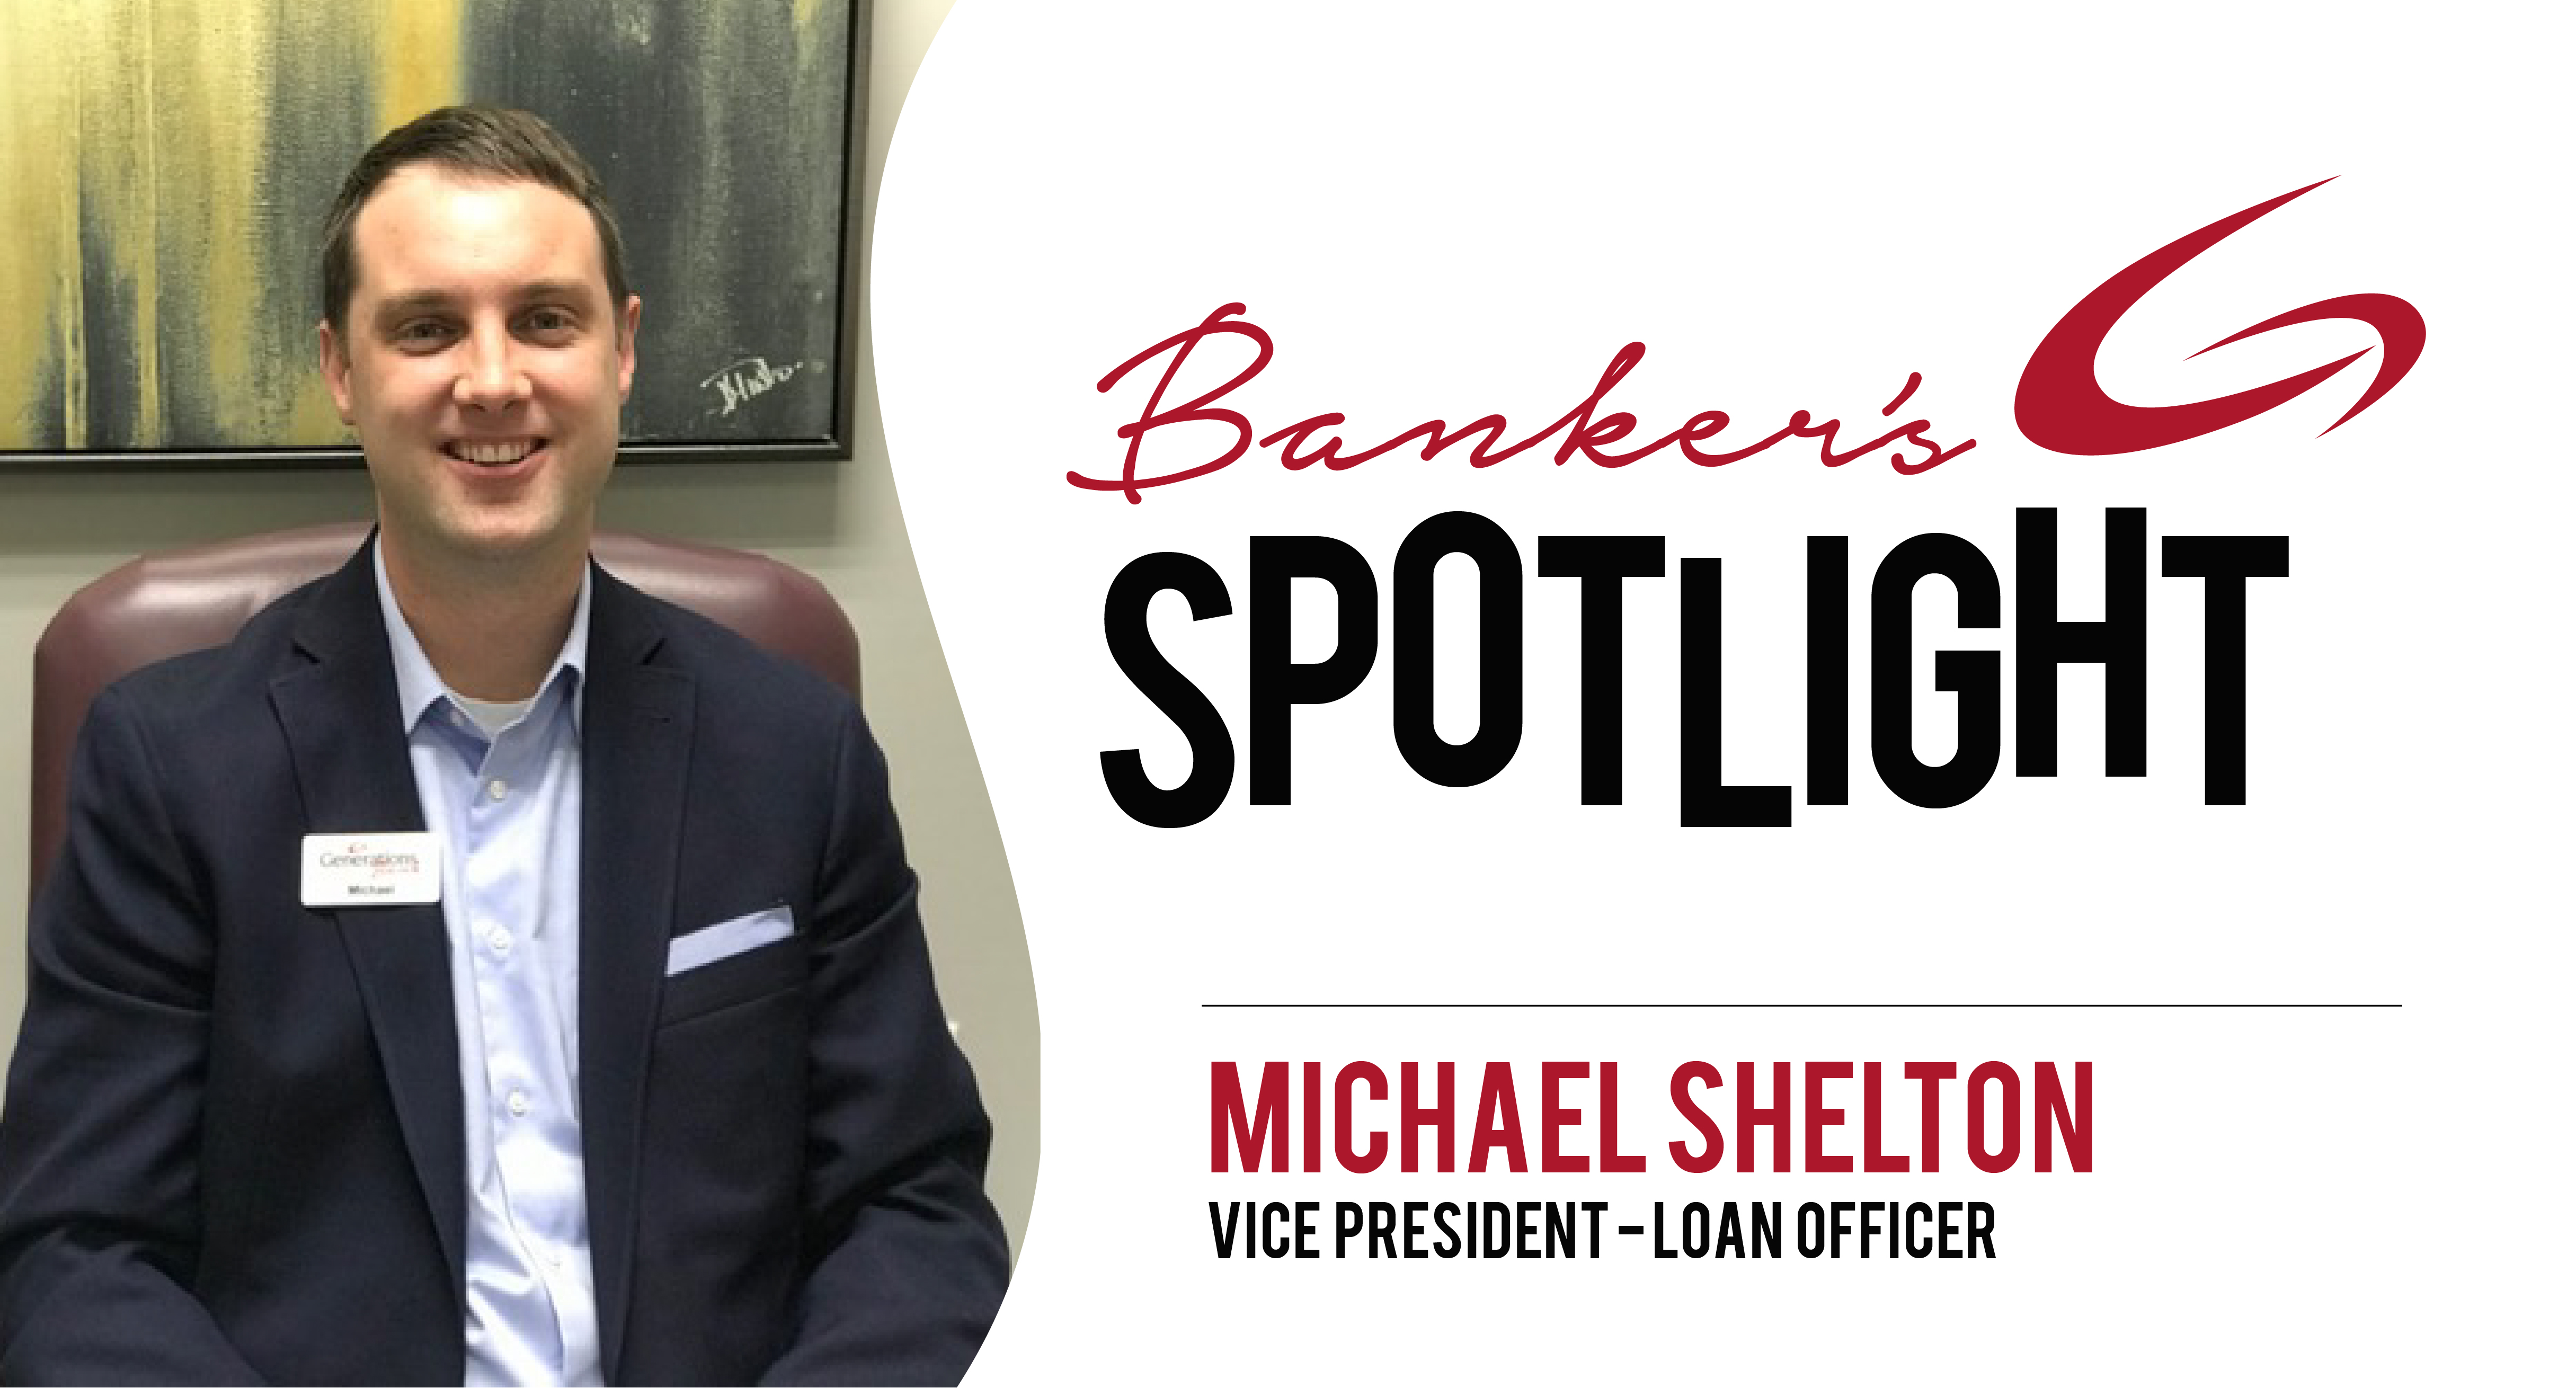 Banker's Spotlight - Michael Shelton